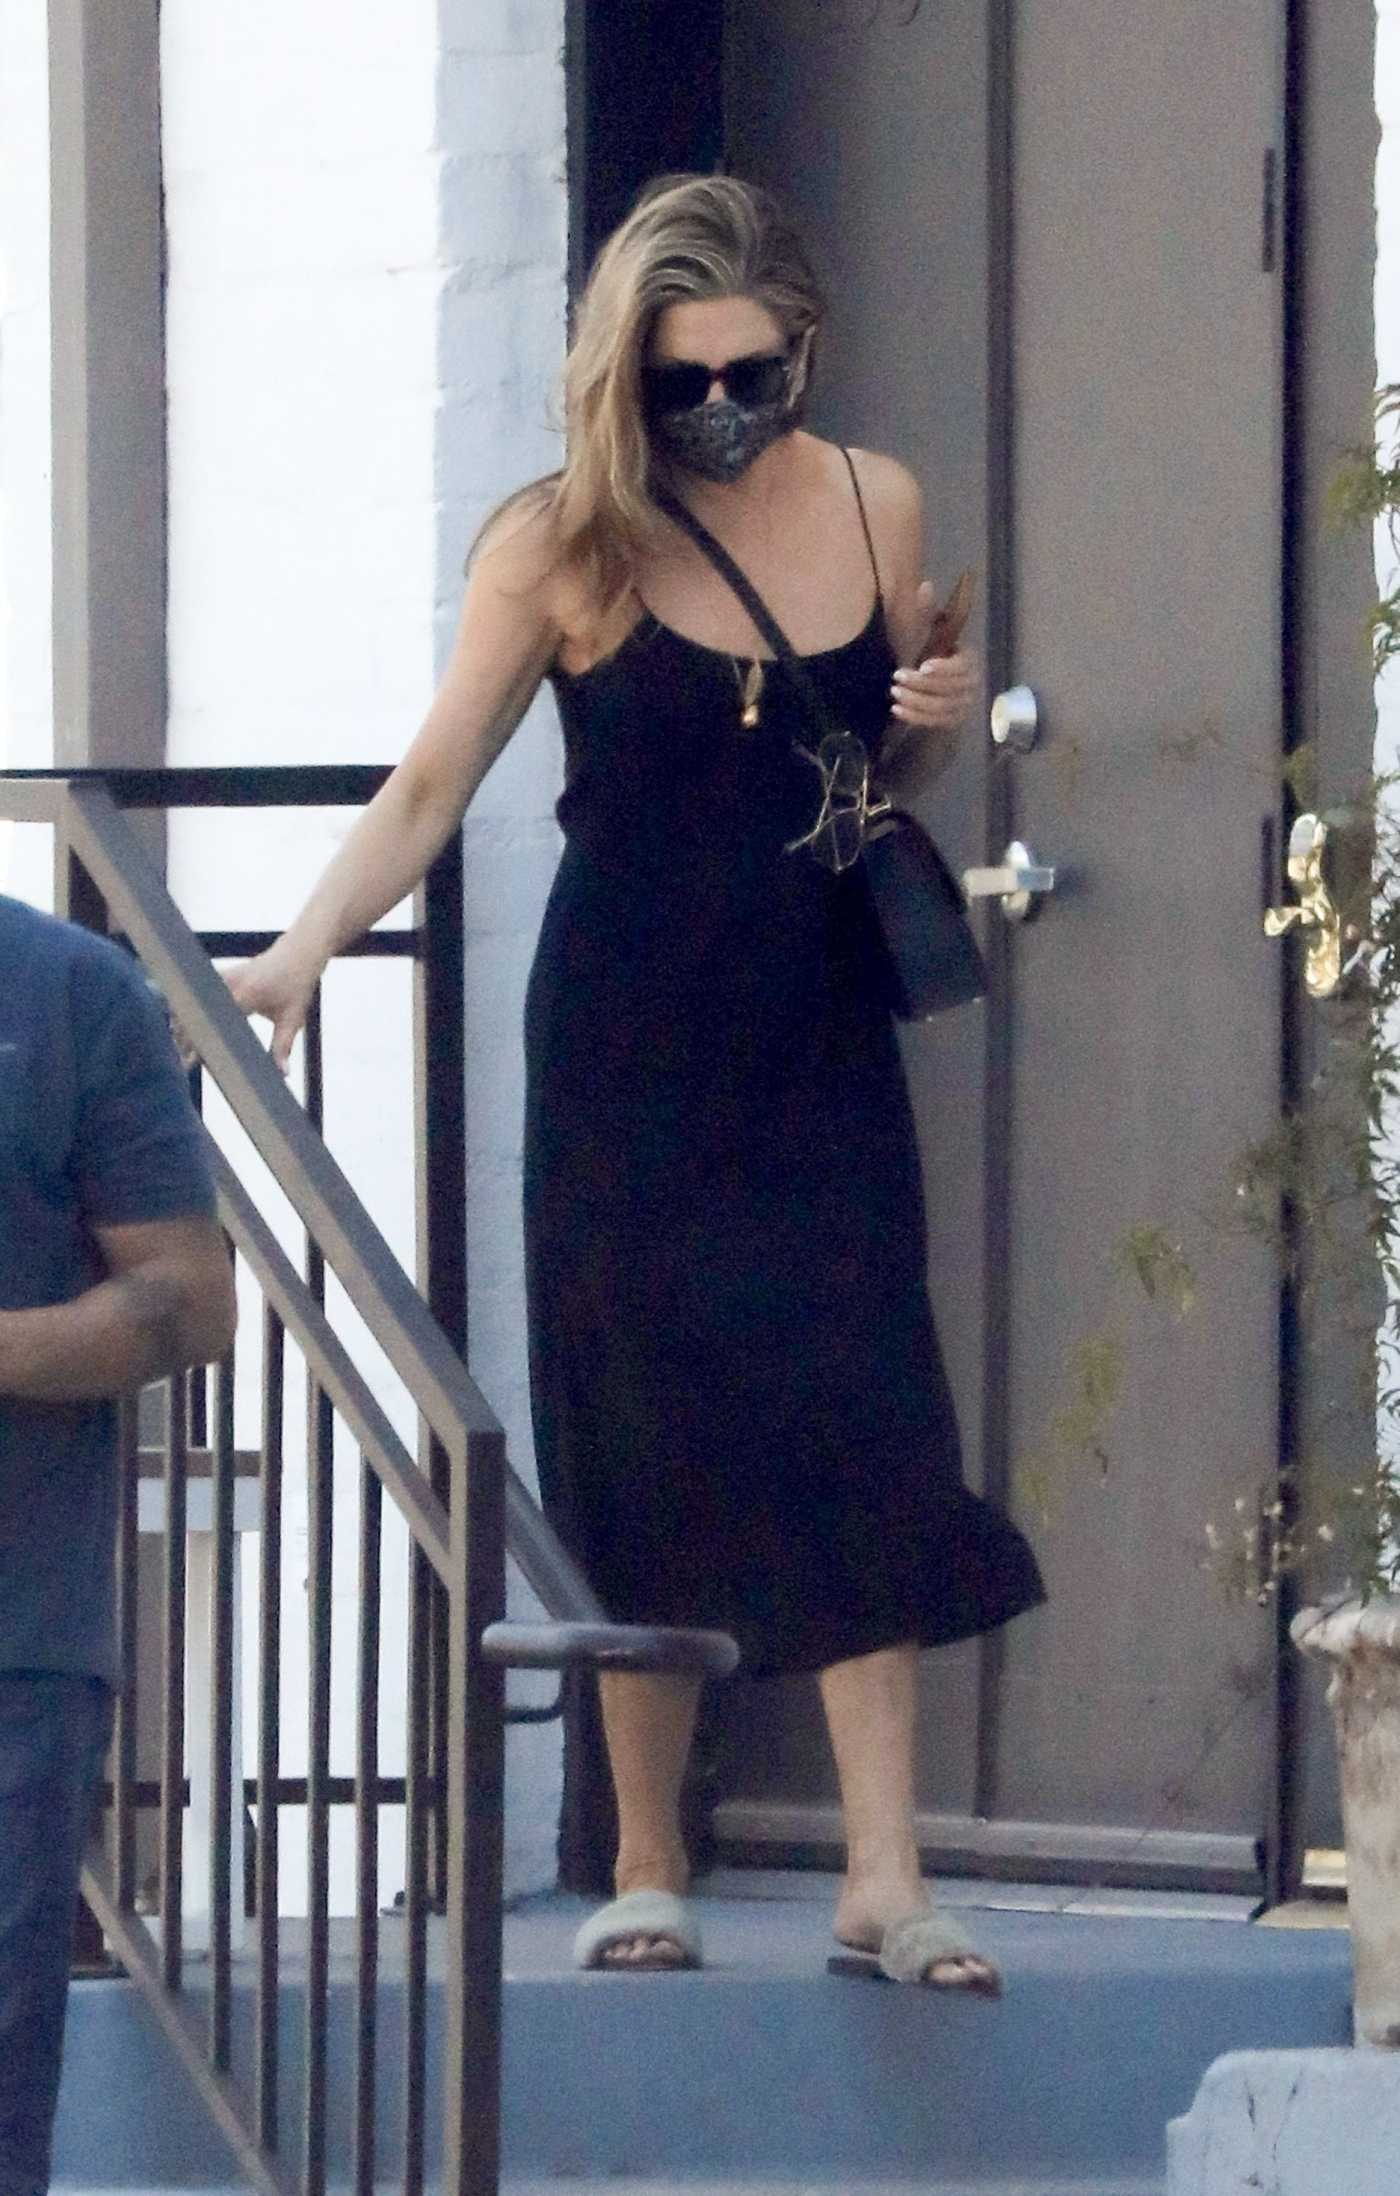 Jennifer Aniston in a Black Dress Leaves a Hair Salon in Beverly Hills 05/23/2021